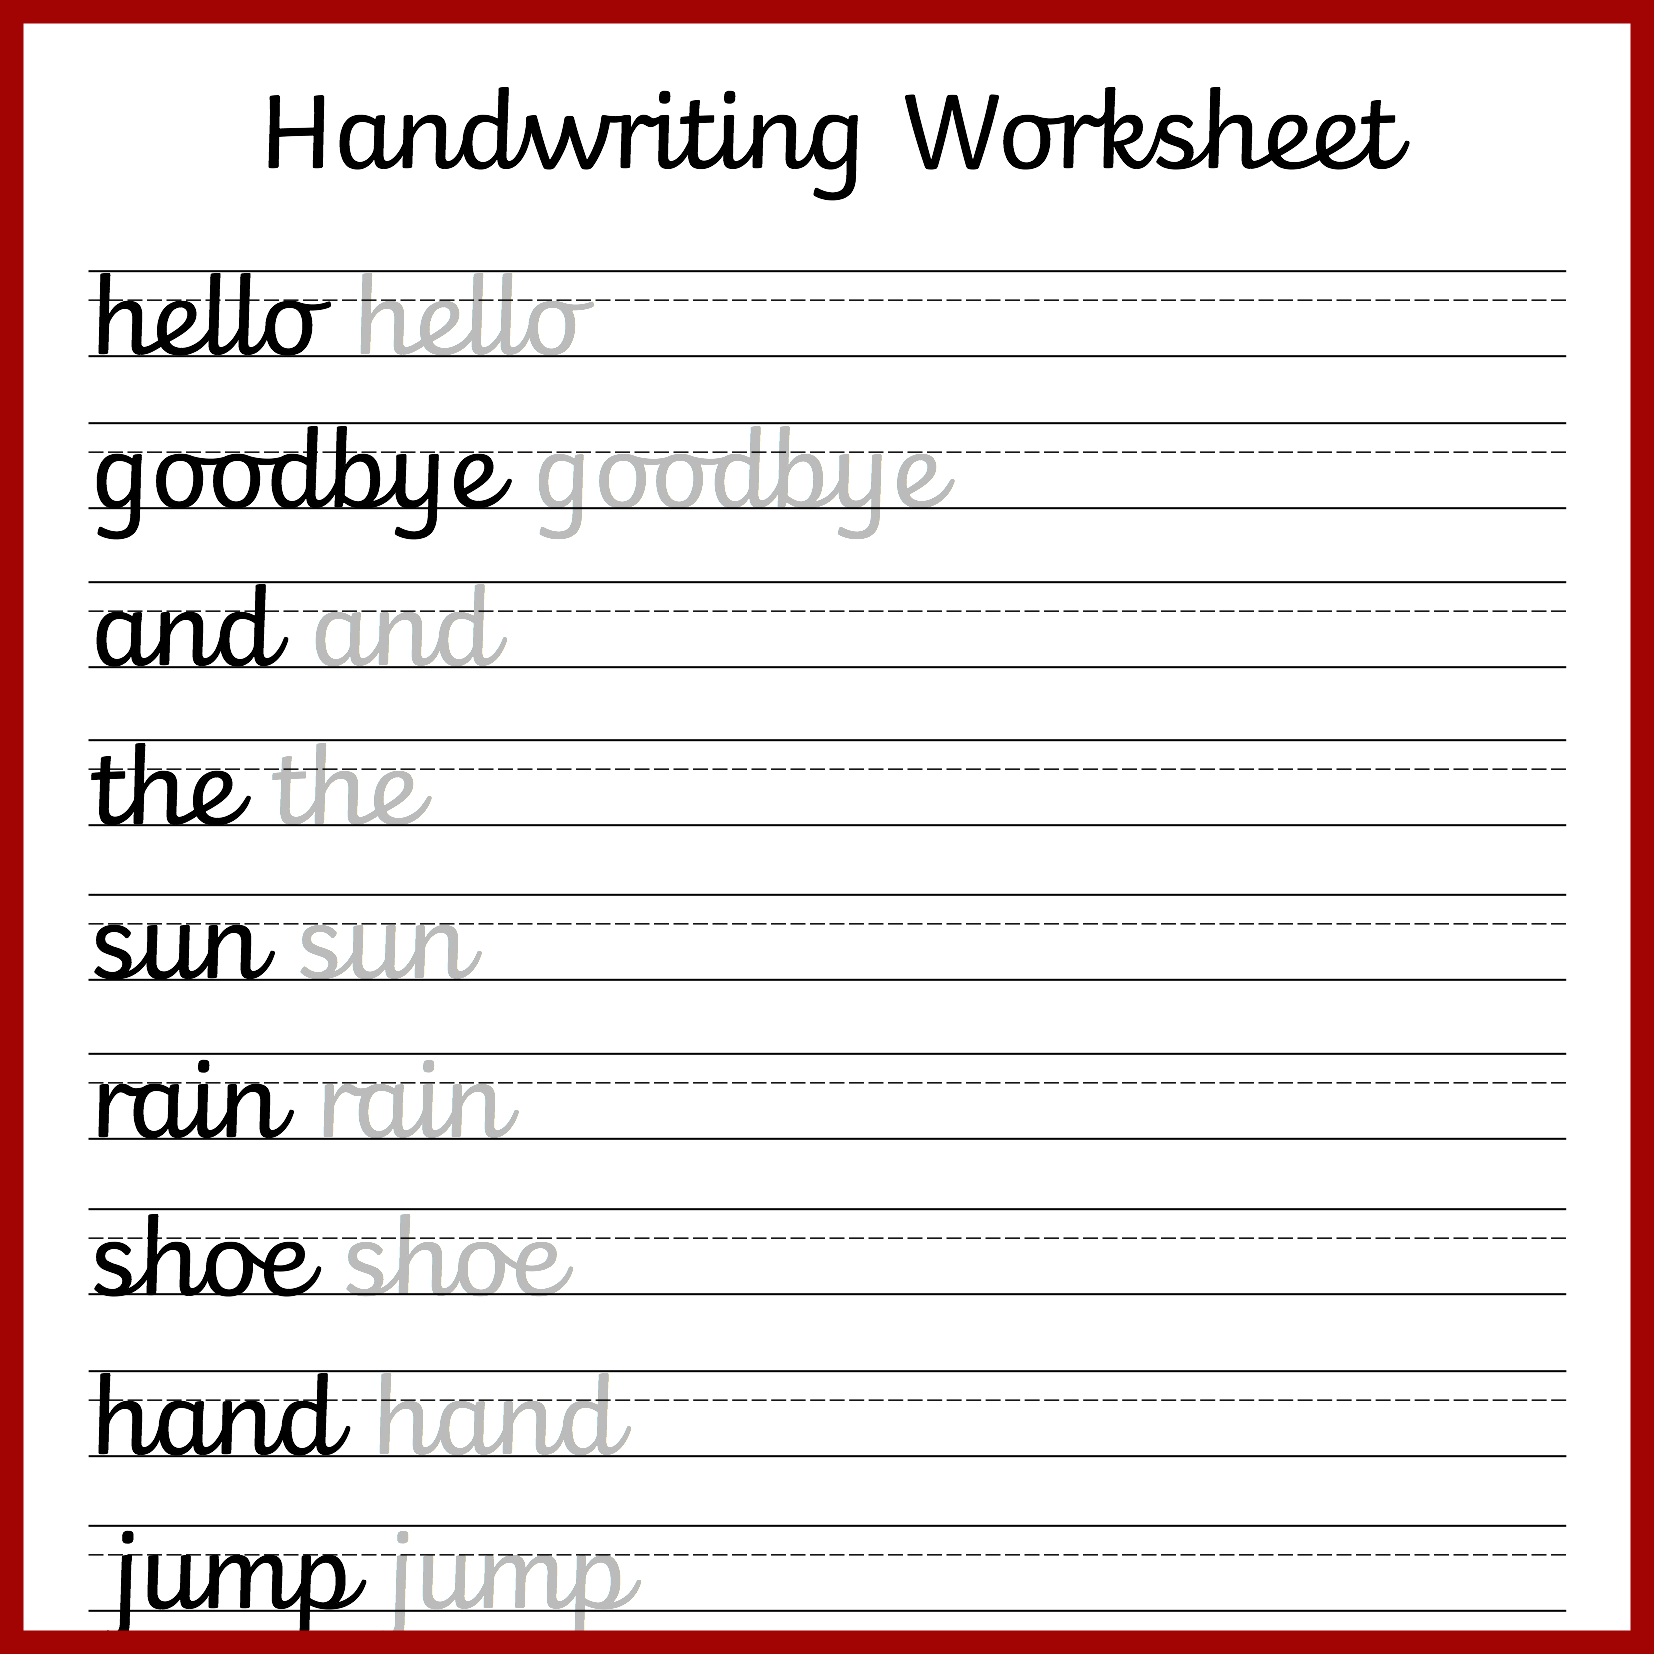 Worksheets Free Printable Cursive Worksheets handwriting template daway dabrowa co template